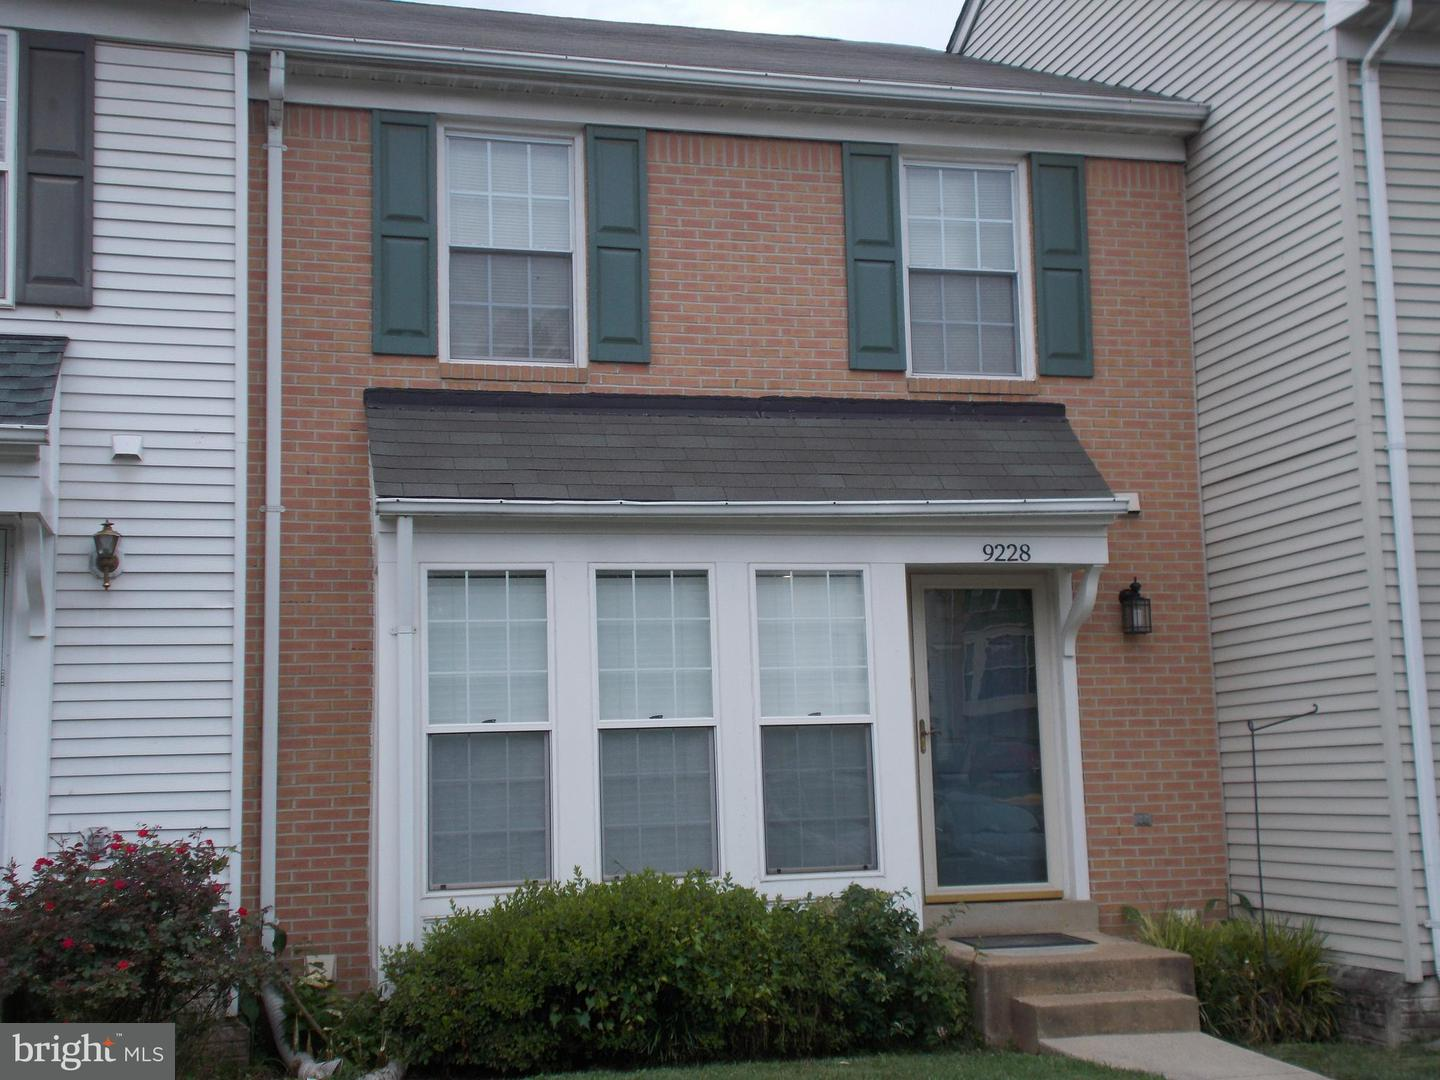 Other Residential for Rent at 9228 Andrew Dr Manassas Park, Virginia 20111 United States